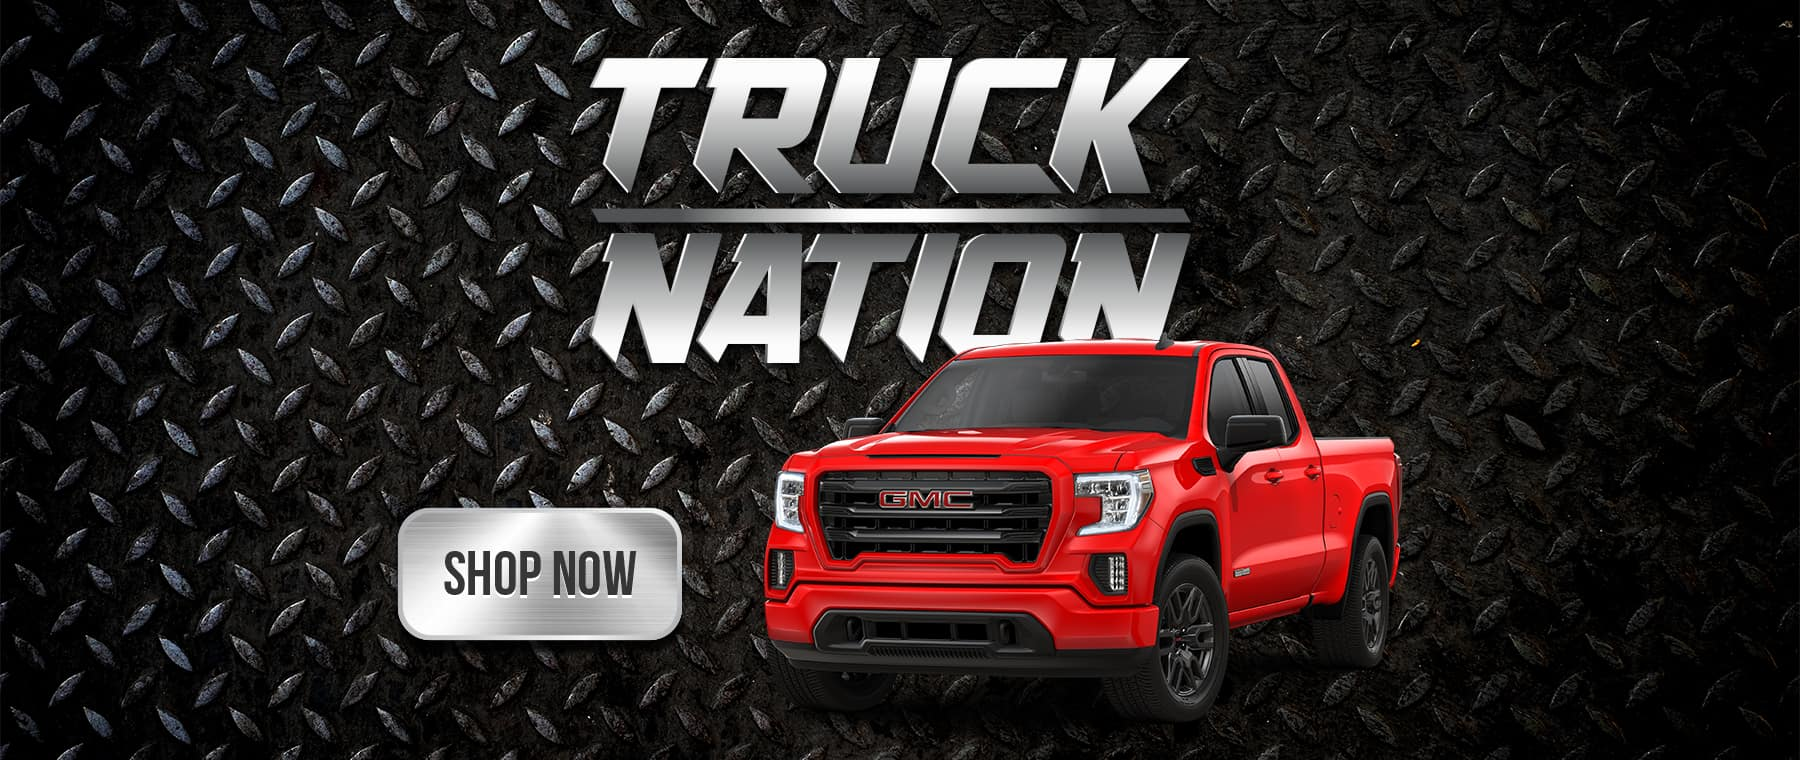 6015-GMR-TRUCK-NATION-HOME